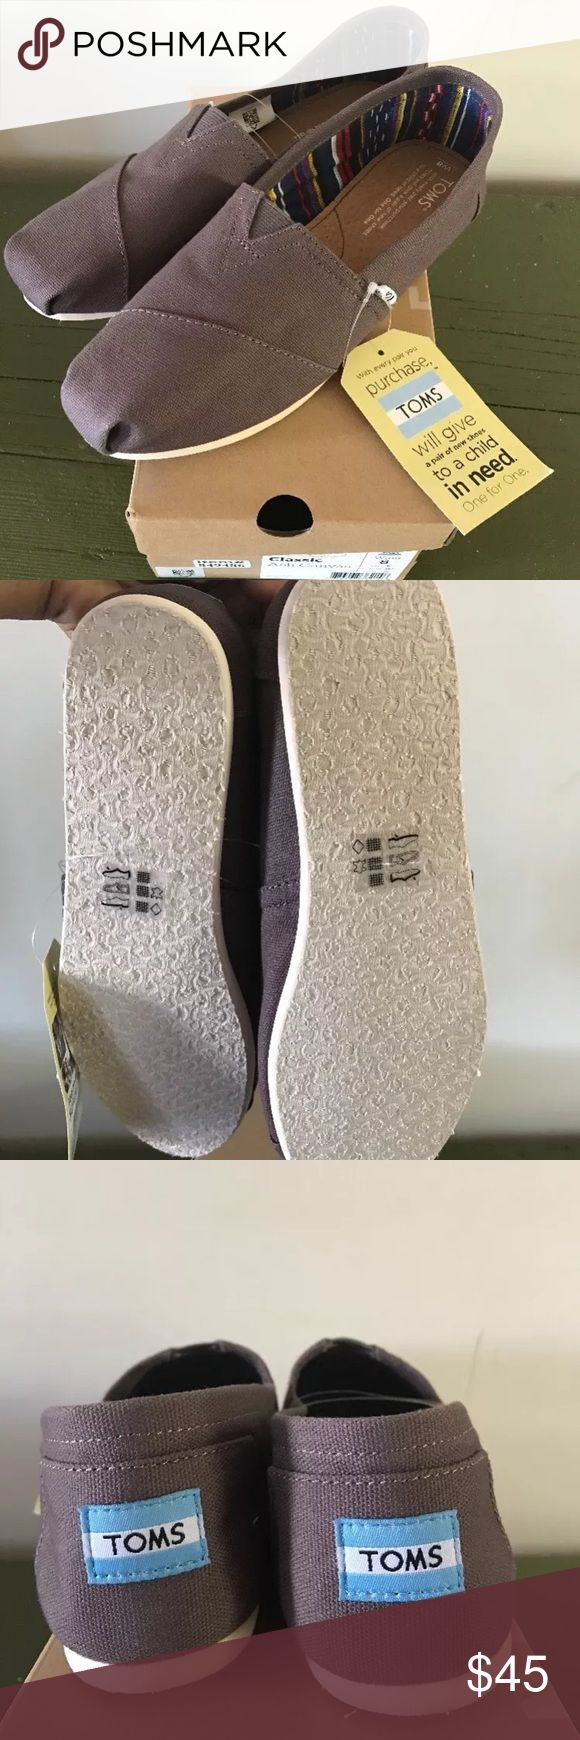 ✨✨NEW✨✨TOMS Shoes NWT TOMS Women's Shoes  Sizes available 7, 8, 9, 9.5 (true to size)  Color: Ash Canvas   Perfect condition - Brand New. Never worn. All original tags attached. Comes with original shoe box and TOMS sticker.   Rubber sole. Canvas material.   No Trades  15% OFF Bundle Deal for 2+ items TOMS Shoes Flats & Loafers